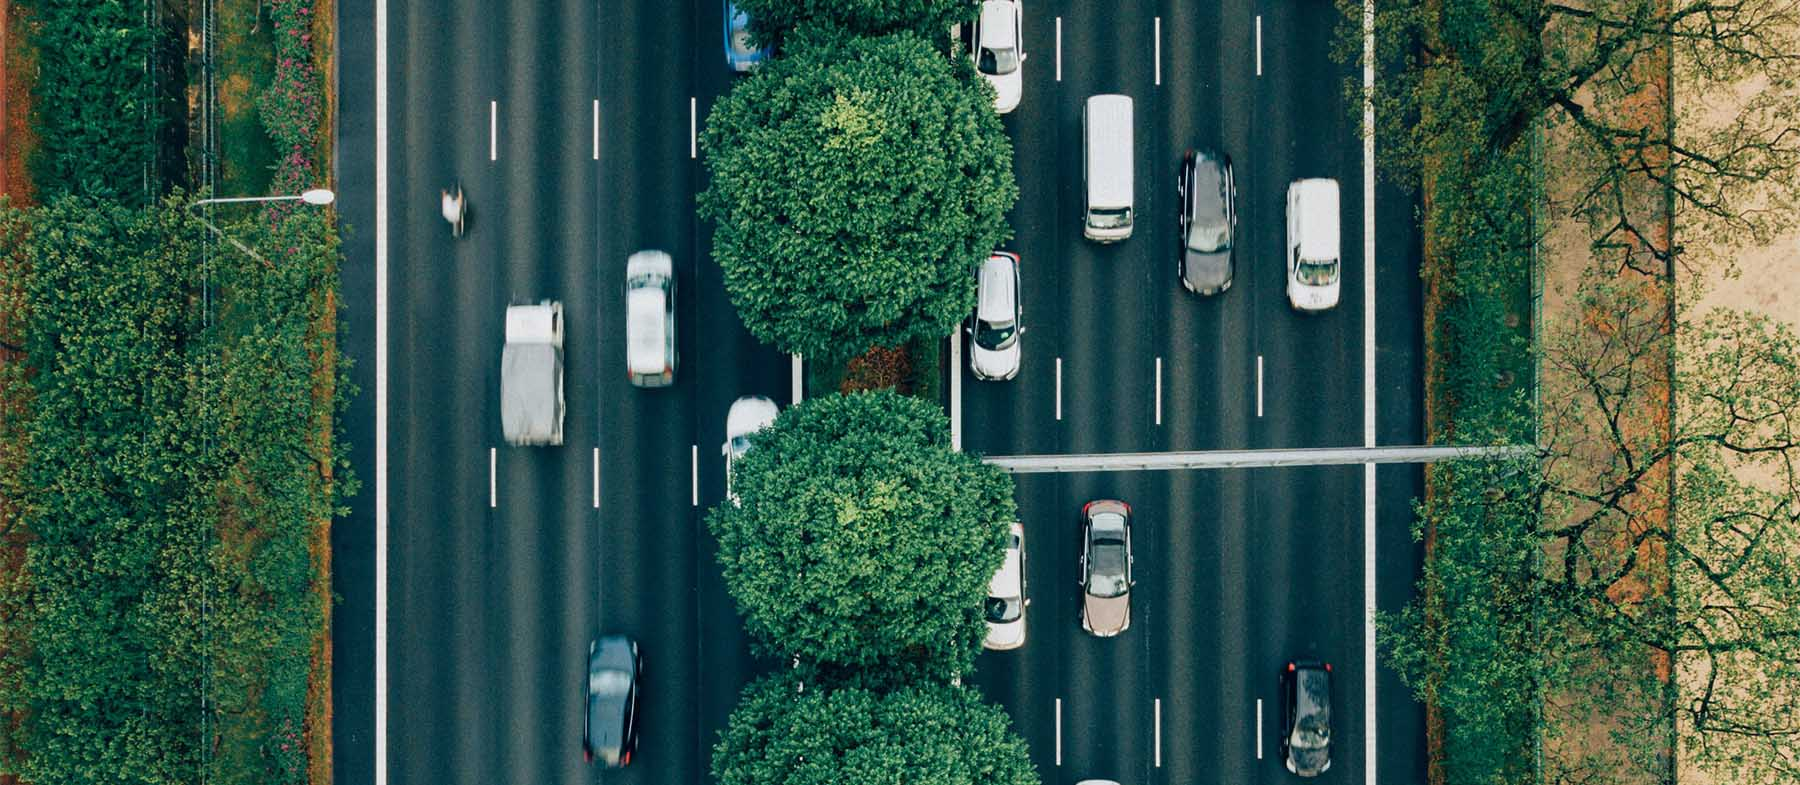 Are electric cars really reducing CO₂ emissions?